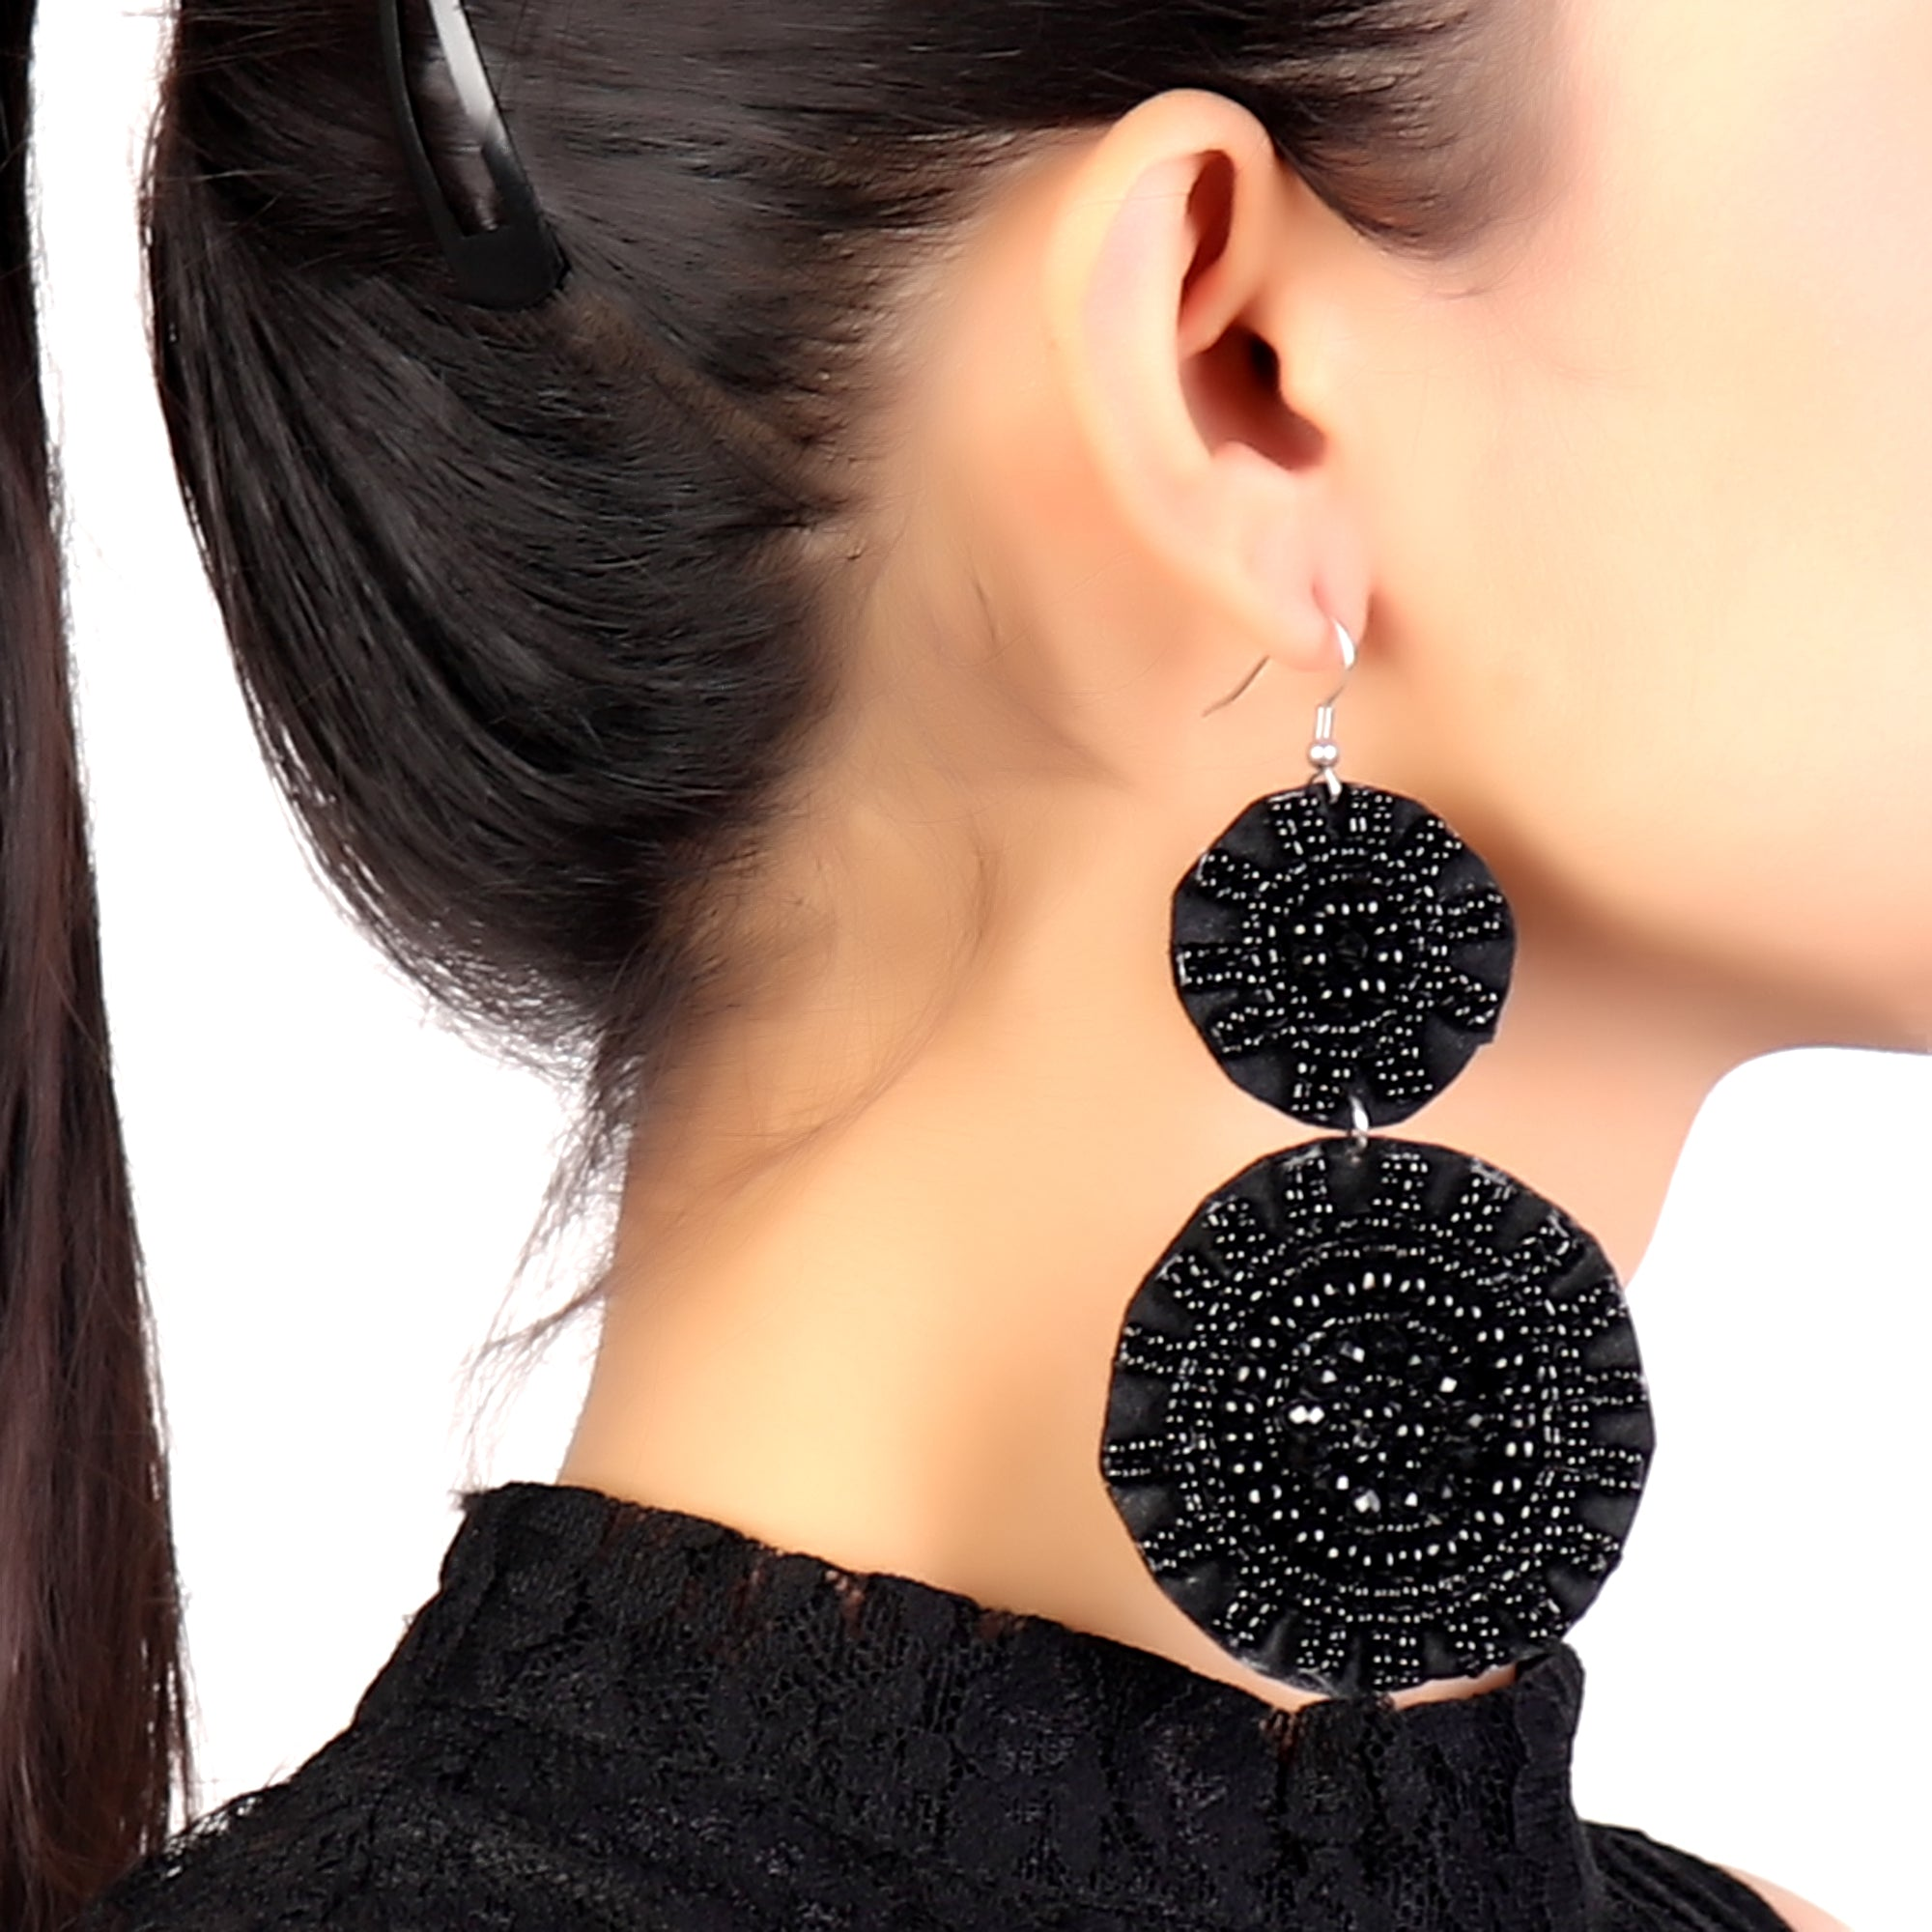 Earrings,Black Magic Velvet Earrings - Cippele Multi Store